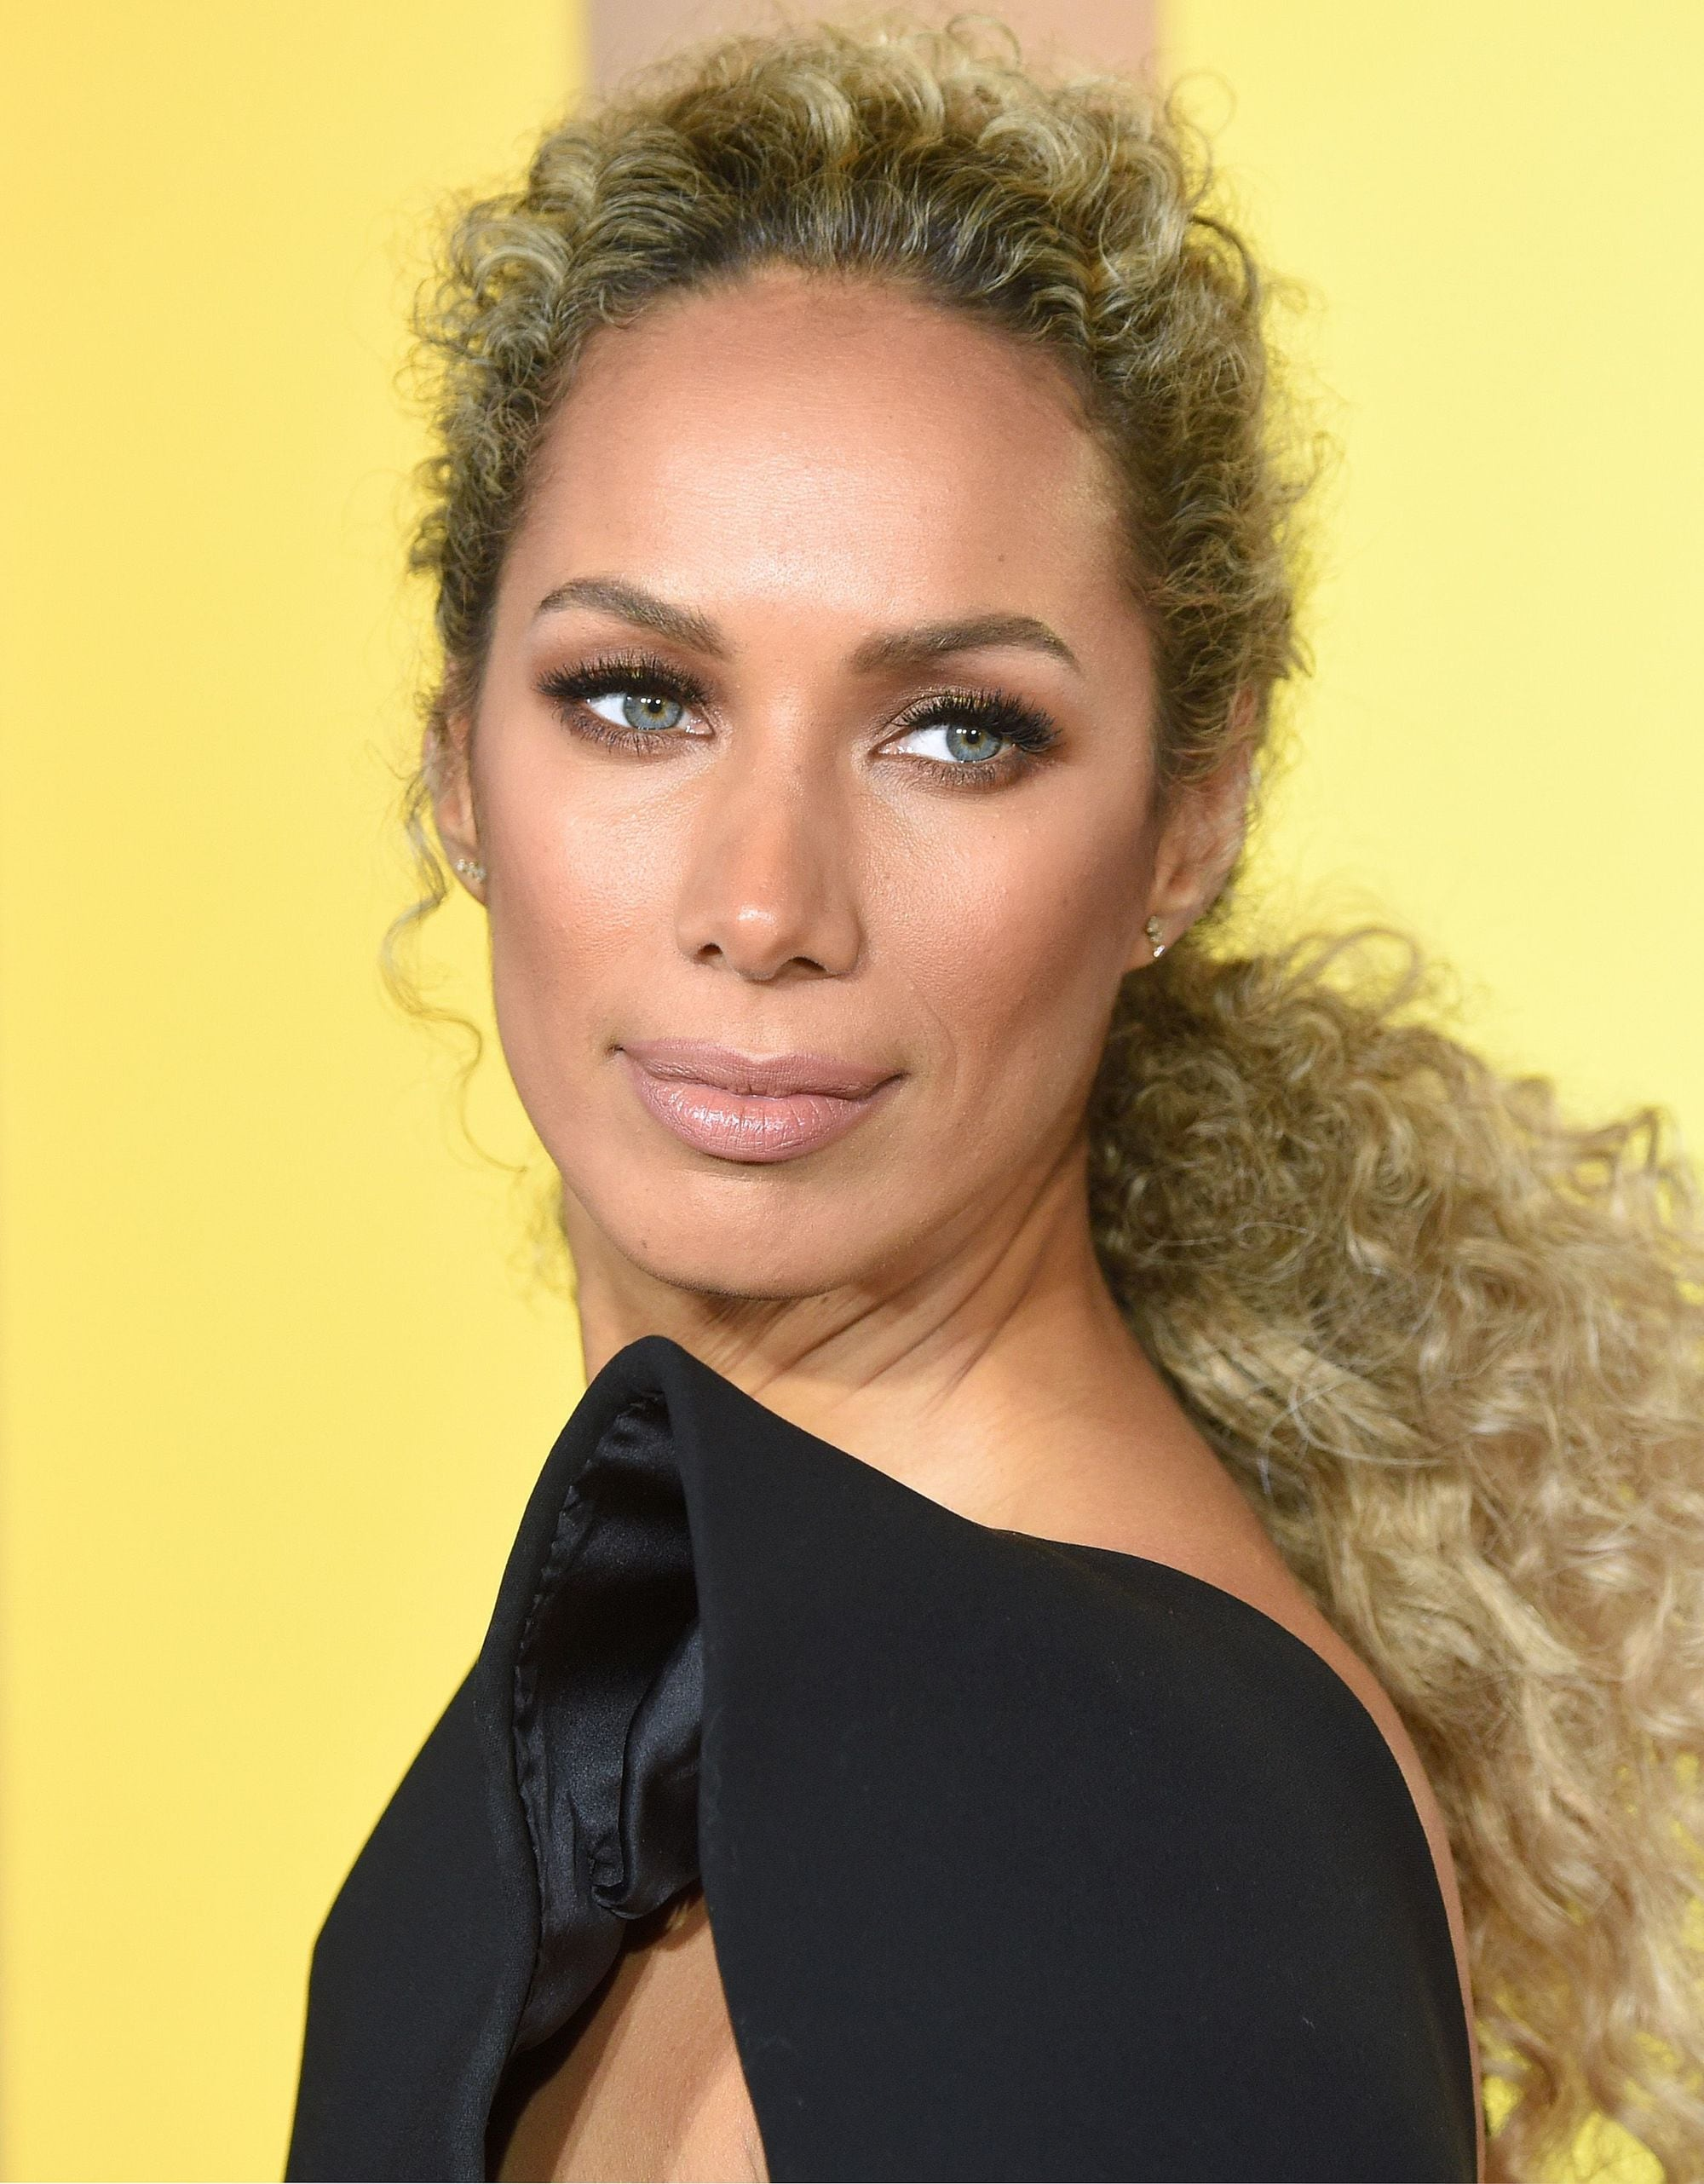 Curly hair hairstyles: Leona Lewis with long golden blonde bronde naturally curly hair styled in a textured low ponytail standing against a yellow backdrop at the Black Panther premiere in London